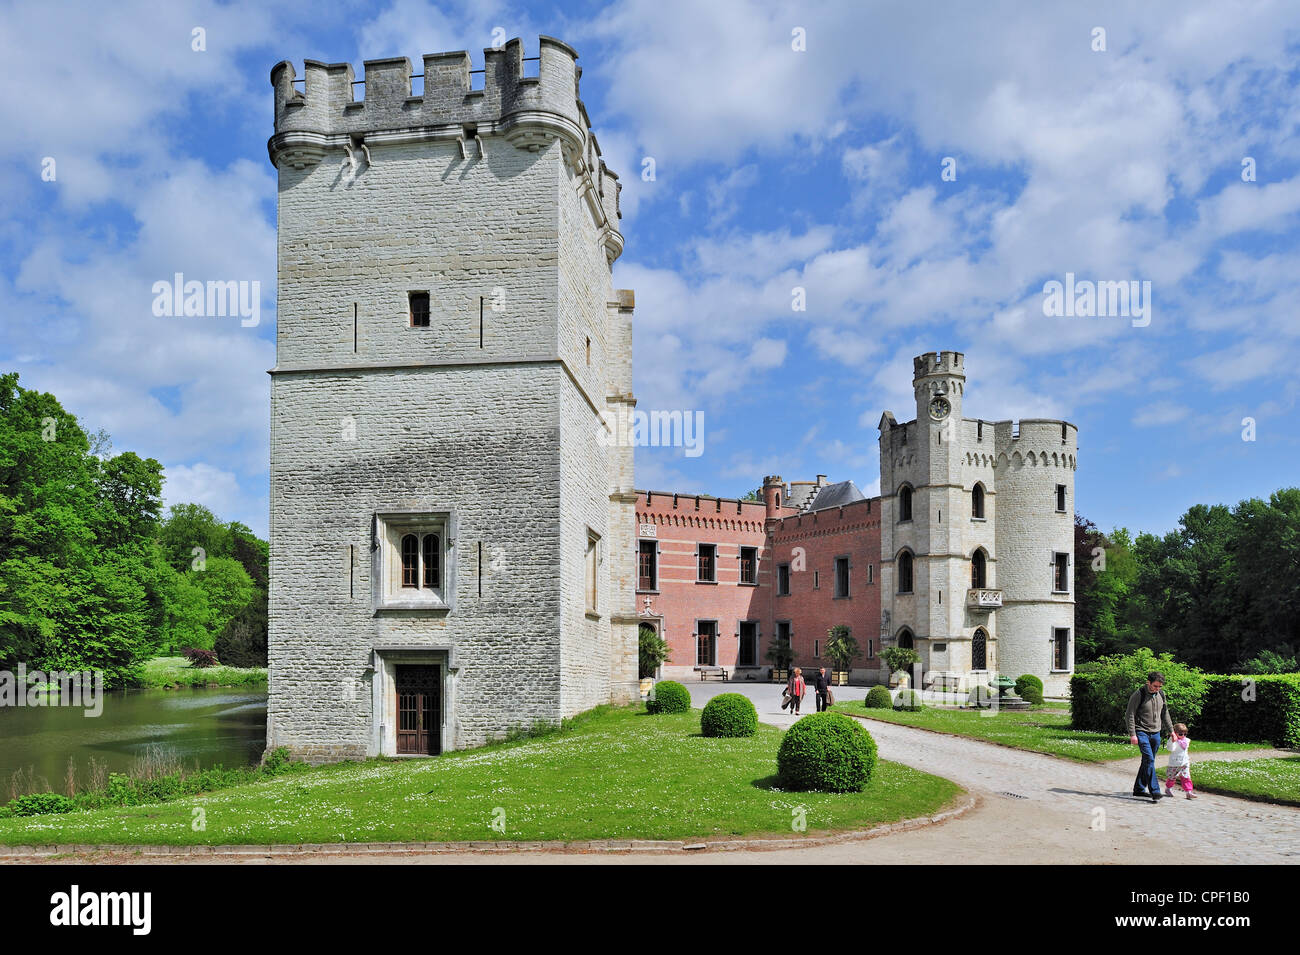 Tourists at the Bouchout Castle in Neo-Gothic style surrounded by moat in the National Botanic Garden of Belgium Stock Photo